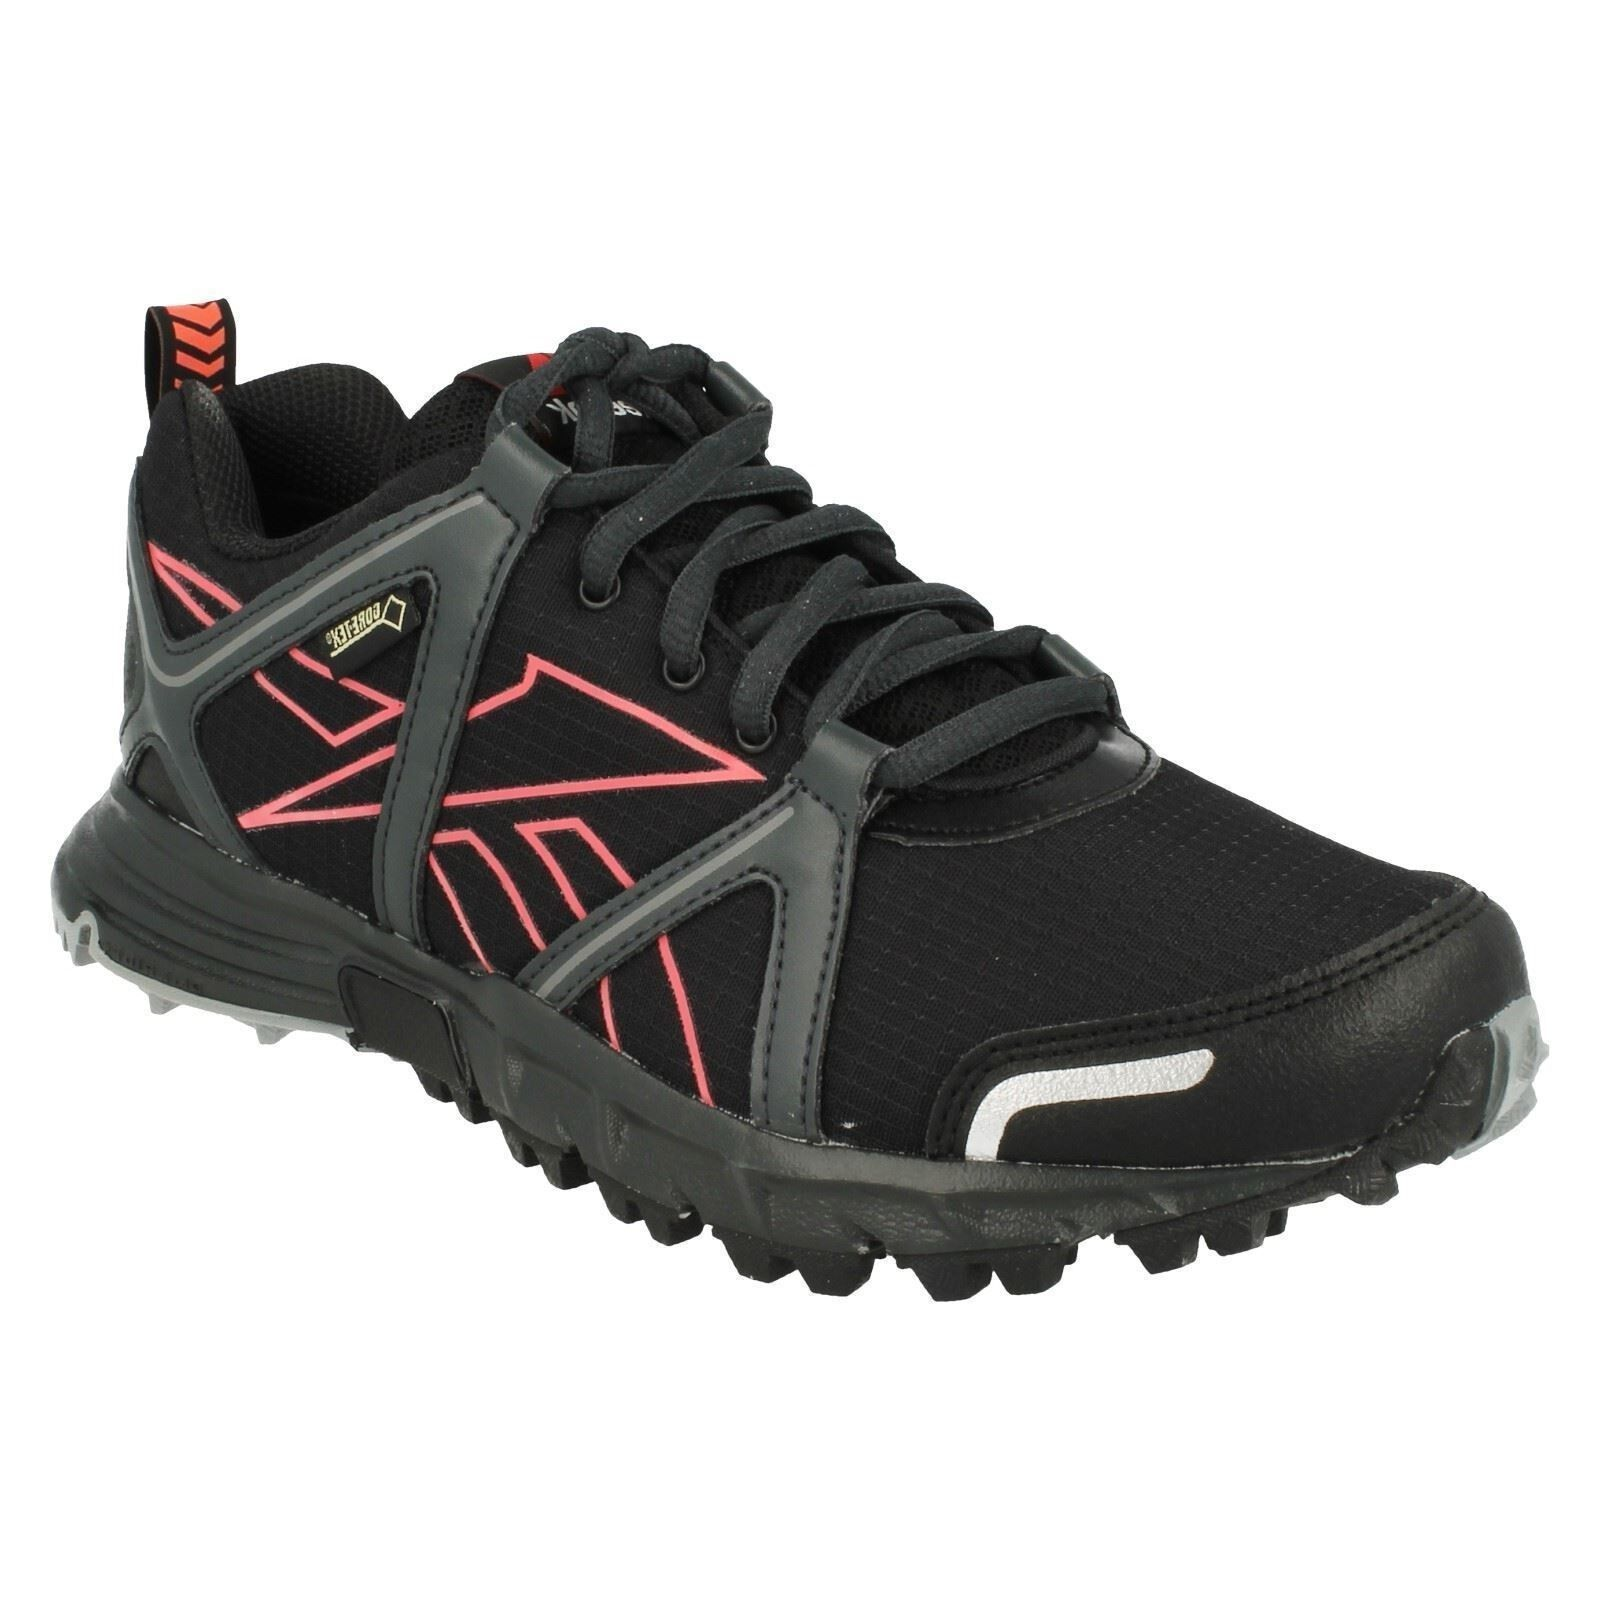 LADIES REEBOK ONE SAWCUT GTX GORE TEX LACE UP WALKING RUNNING TRAINERS Schuhe